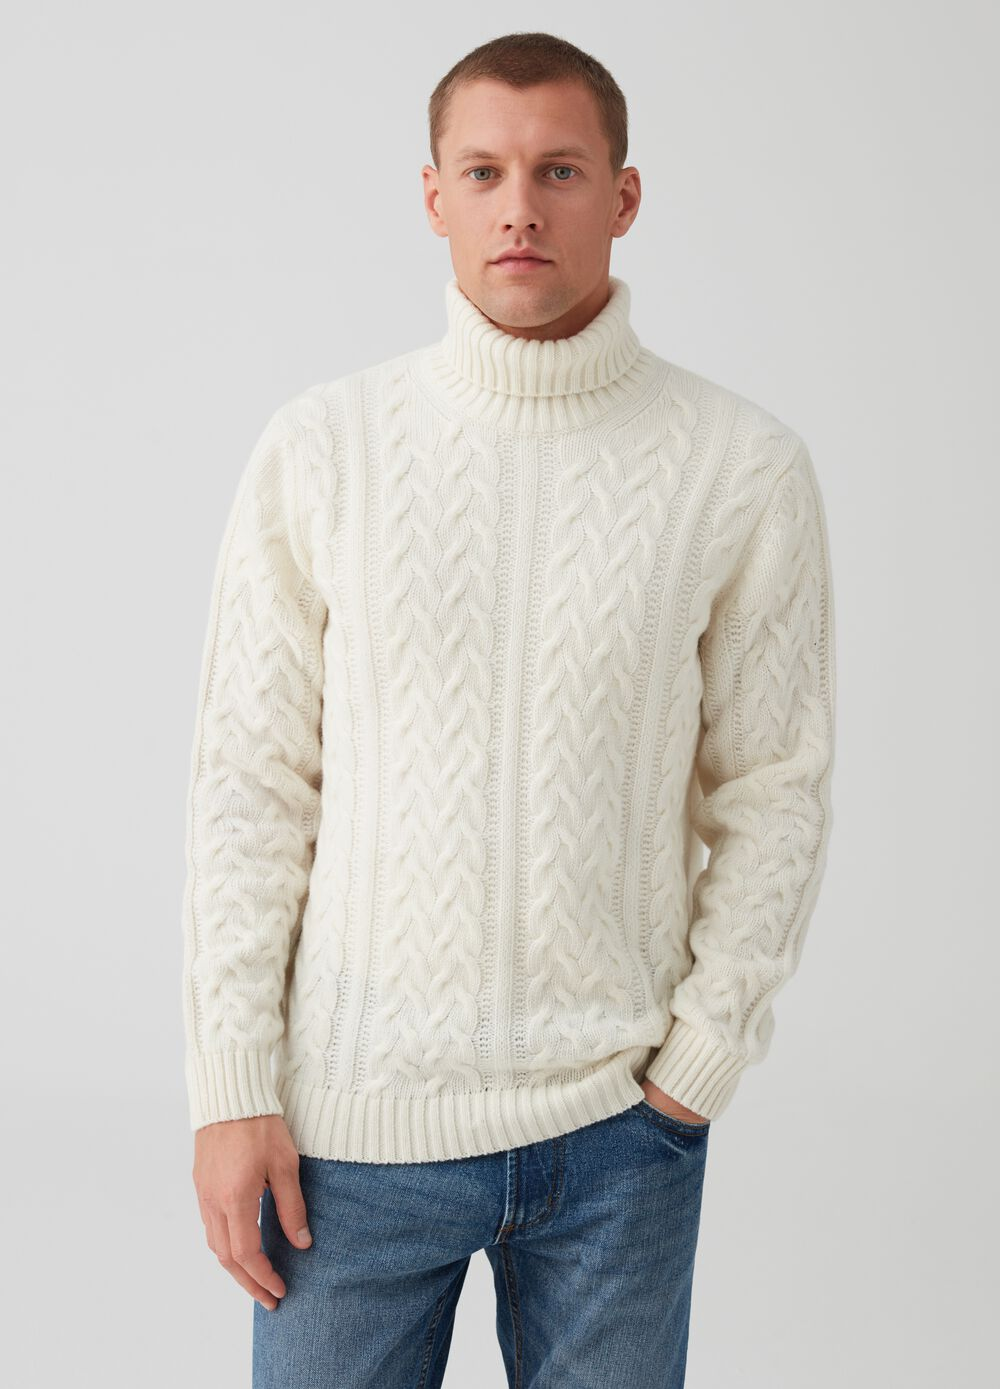 Rumford wool blend pullover with high neck